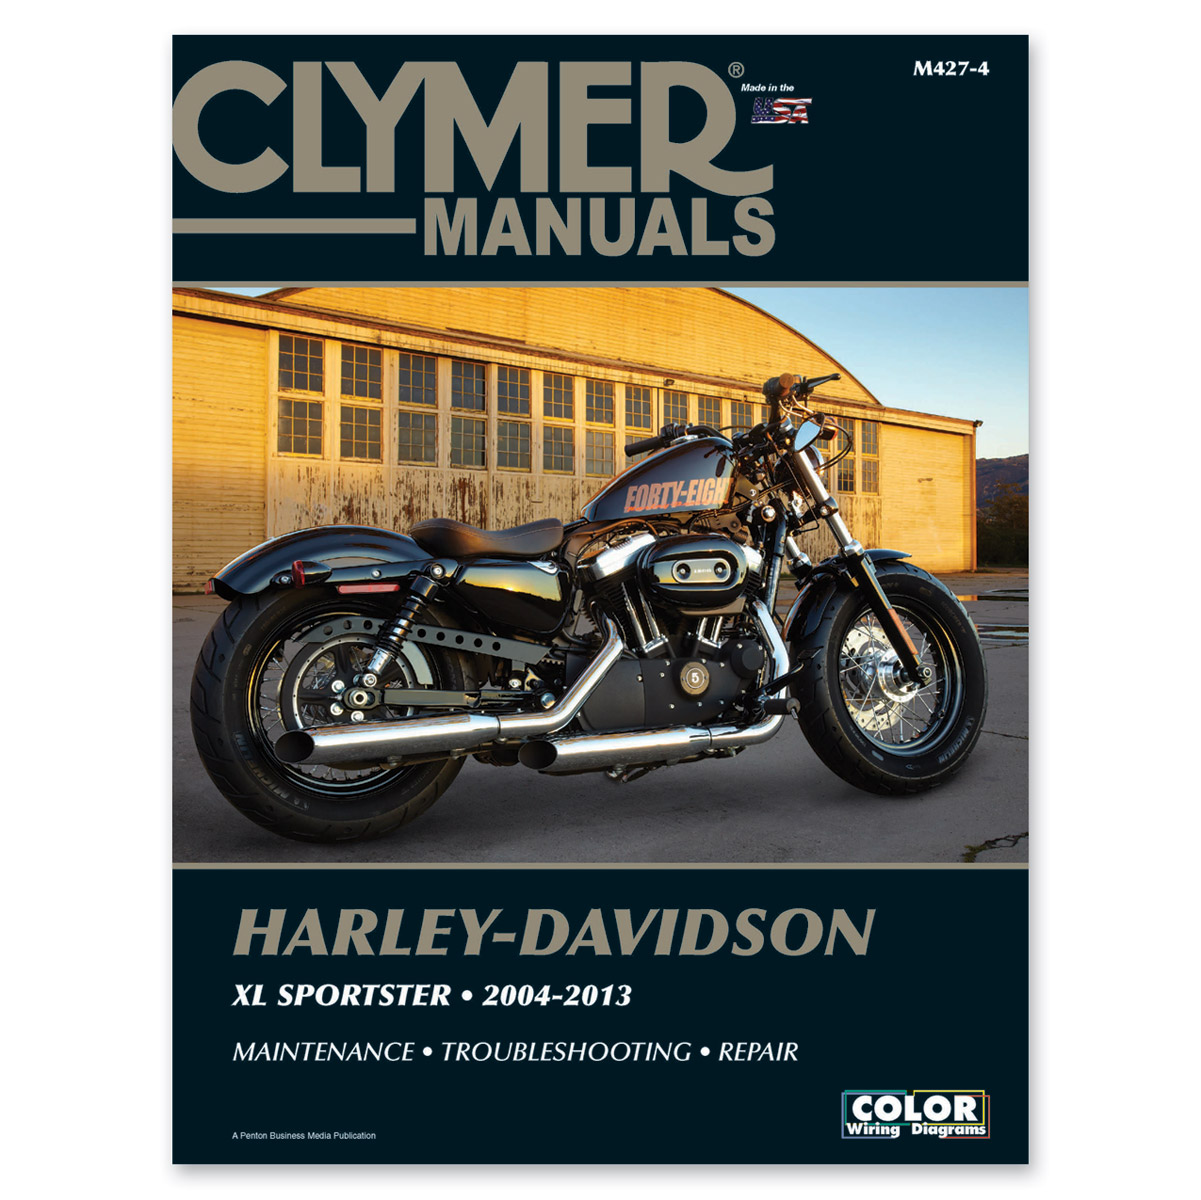 clymer sportster repair manual 446 613 j p cycles rh jpcycles com Sportster 1200 Custom Review 2009 sportster 1200 custom manual